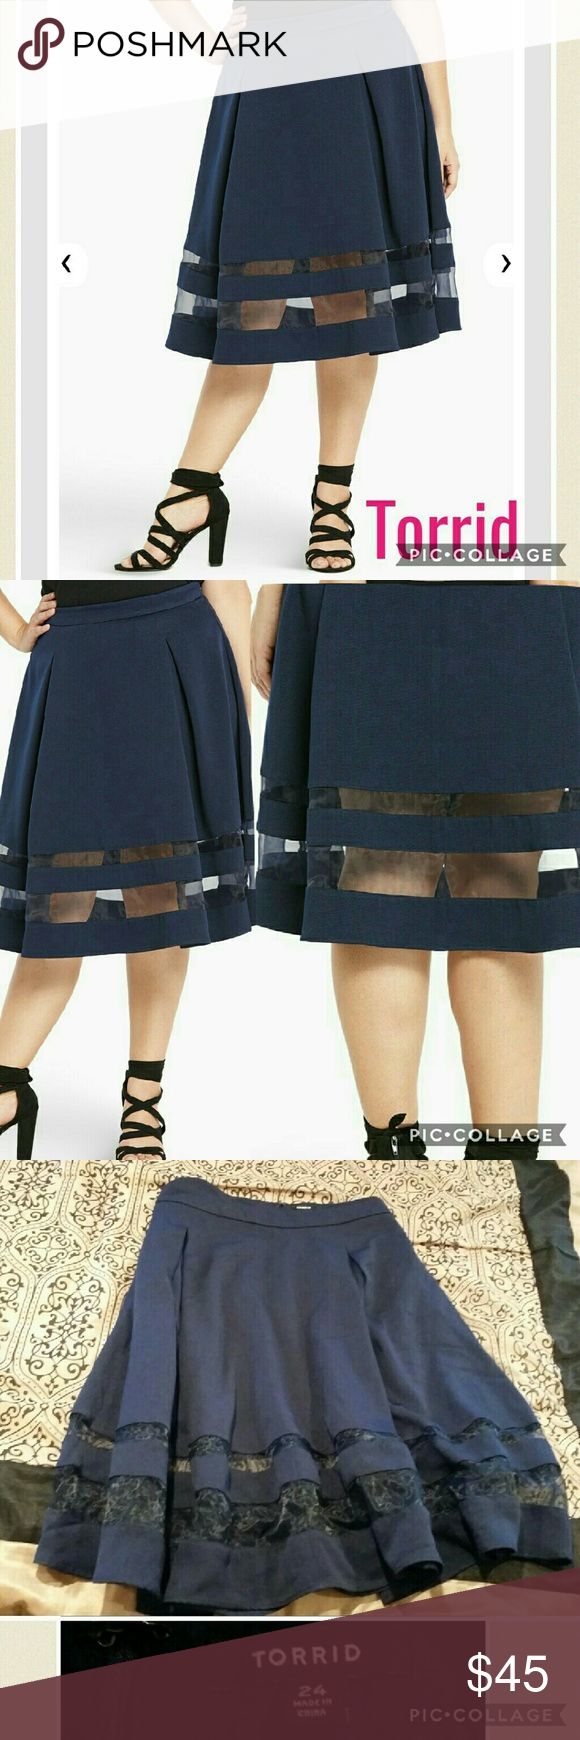 Brand New Torrid Navy Mesh Swing Skirt Brand new without price tag Bought wrong size online & wasn't able to return it My loss is your gain! Leave an offer If intrested Size 24, true to size Fitted with a zipper in back High quality material  Skirt is a little wrinkled at the mesh part in picture but this is how I recived it from the warehouse, im sure a quick iron will have that straightened out! torrid Skirts Midi